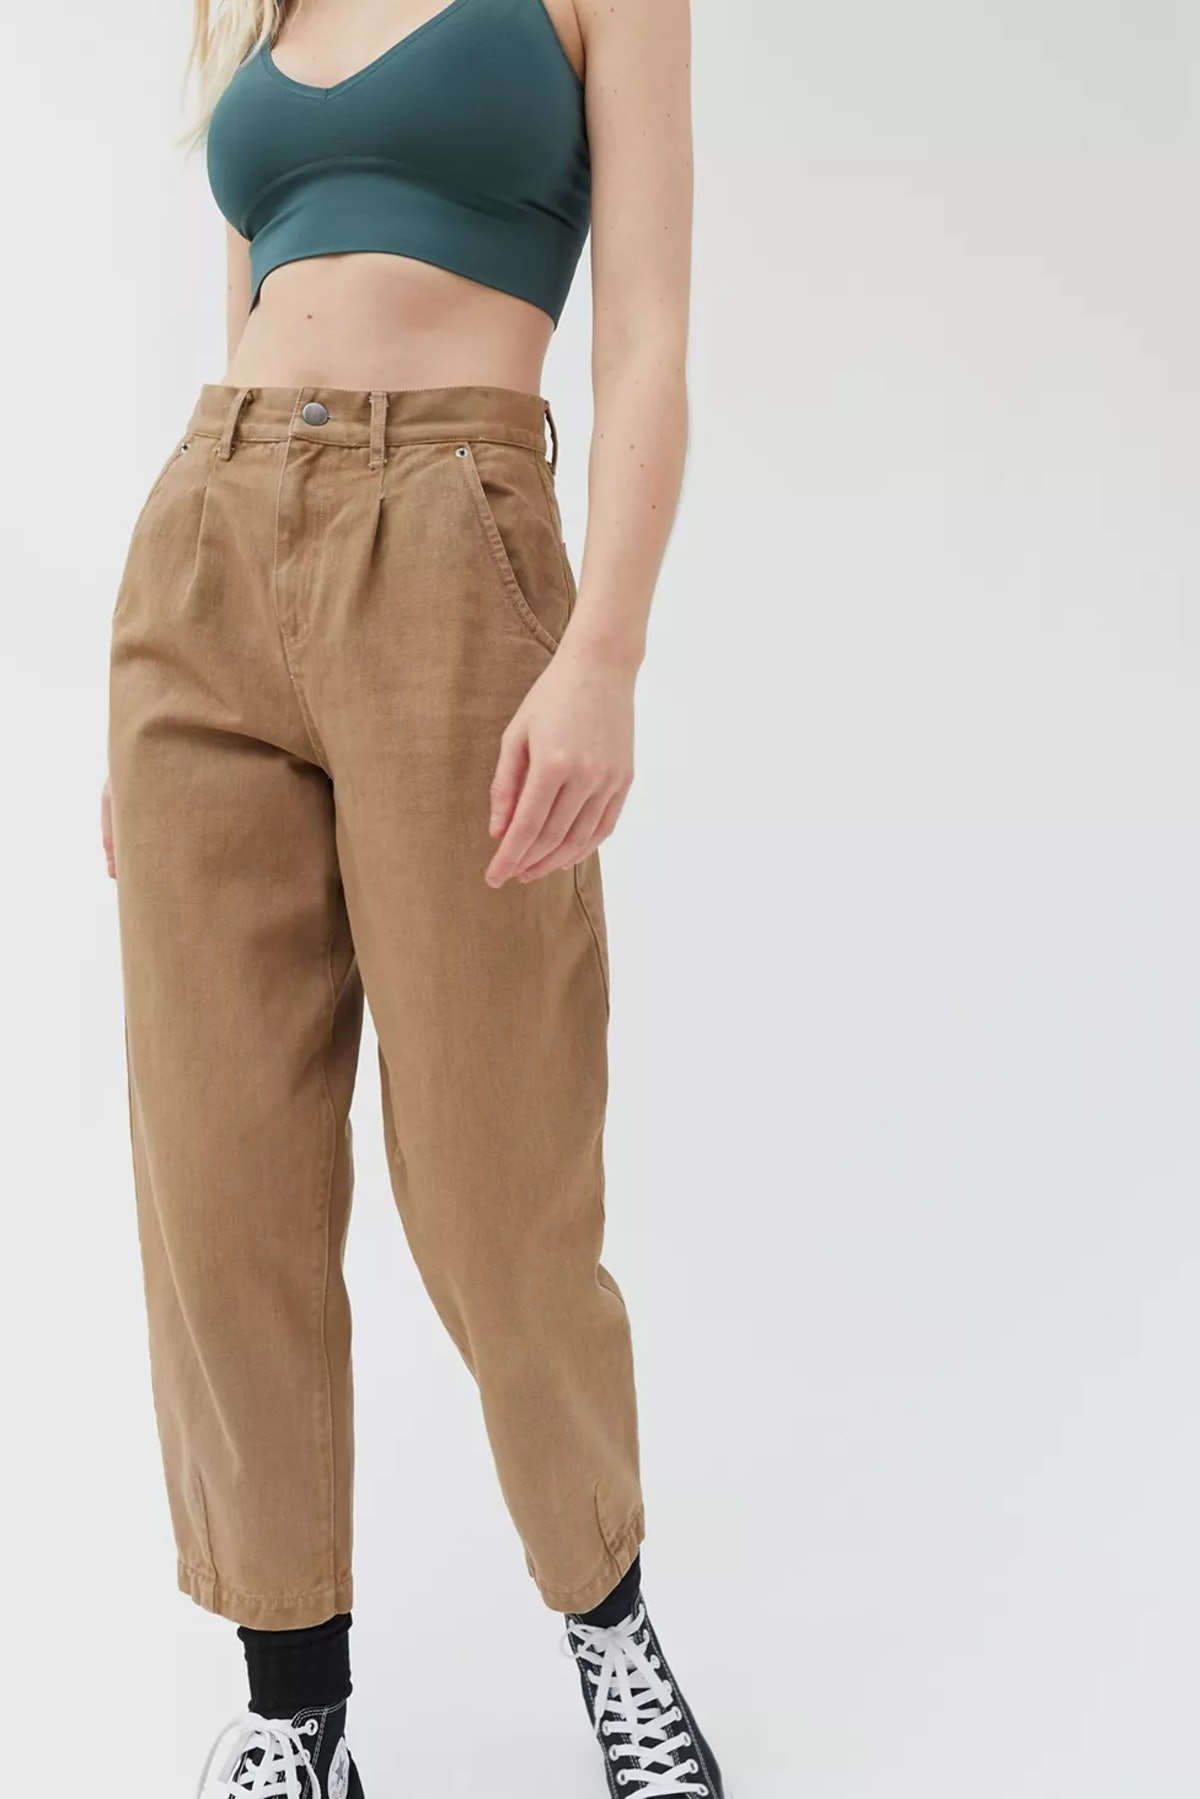 Blue Ember Pleated High-Waisted Pant